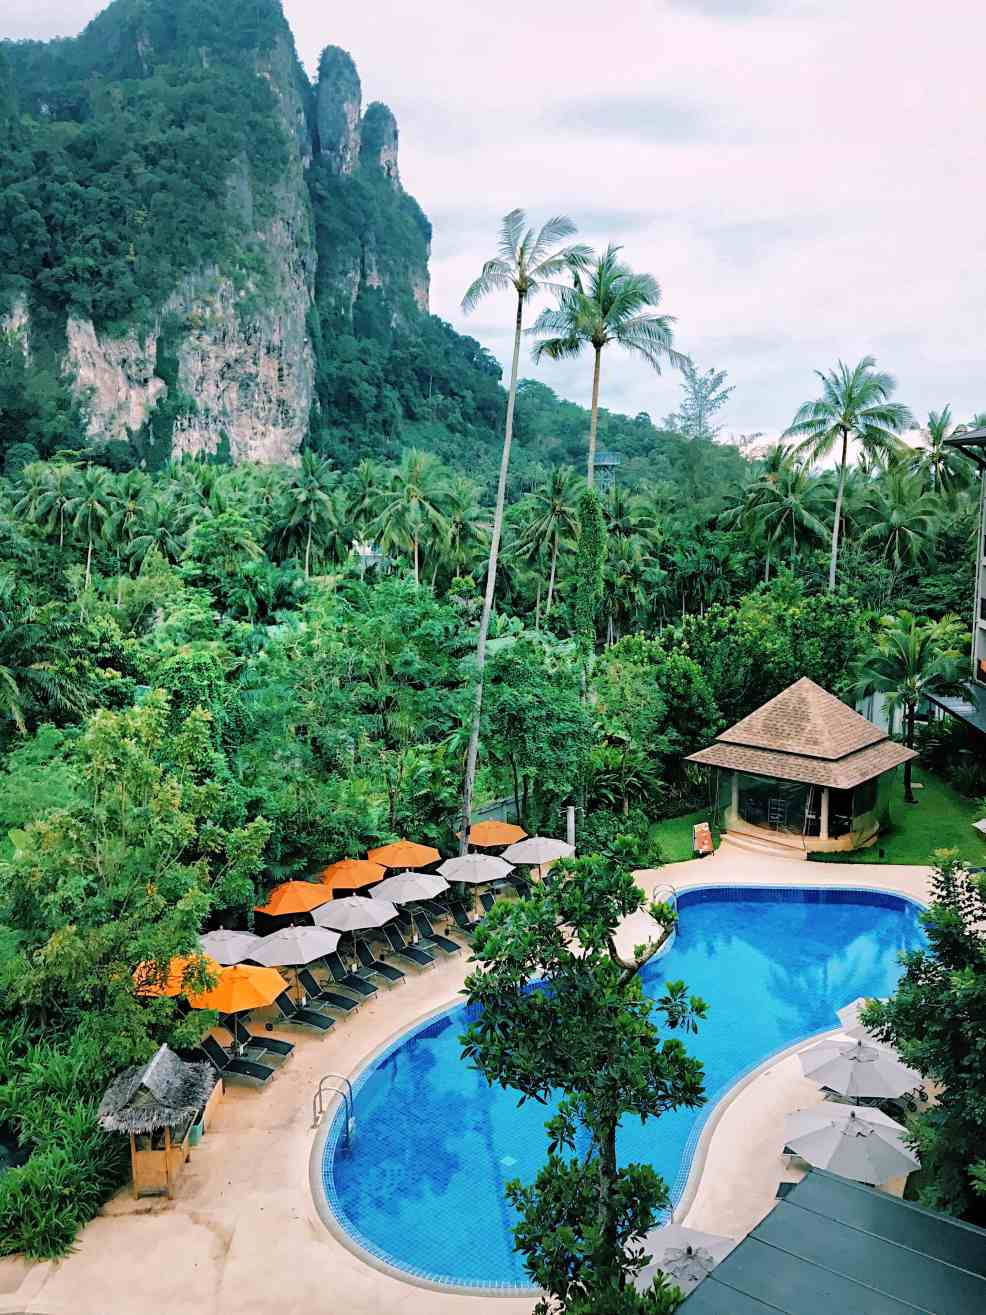 Views from the room, Thailand beaches